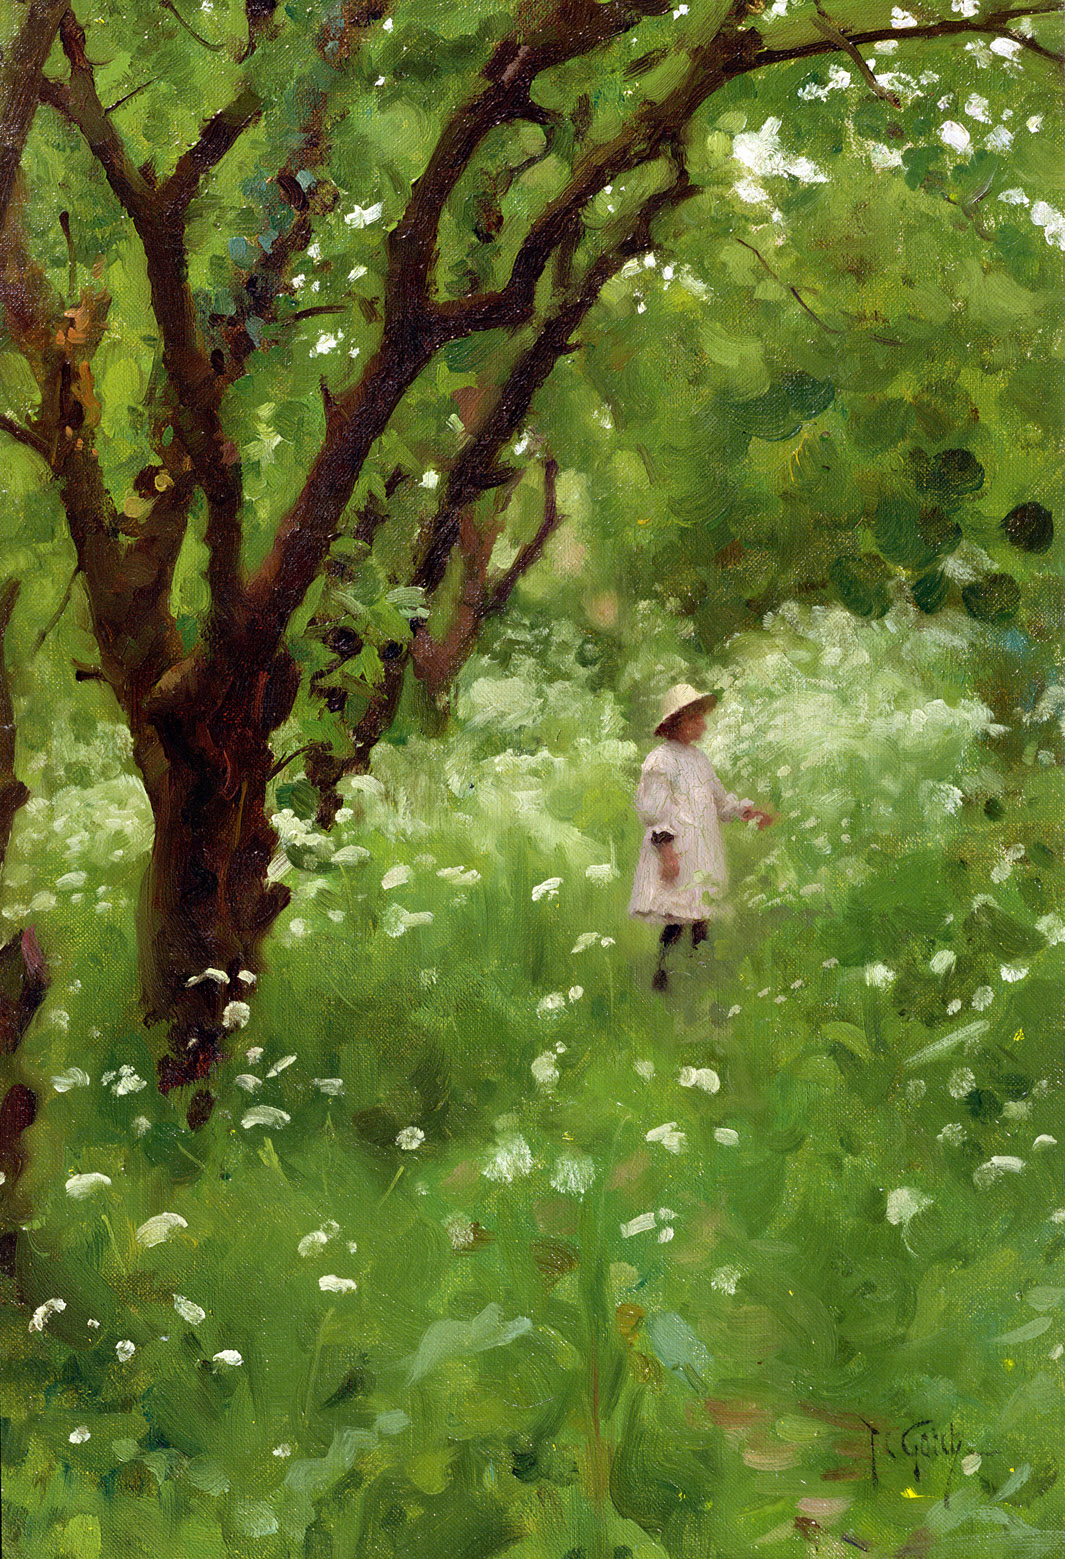 The Orchard, by Thomas Cooper Gotch, 1887.